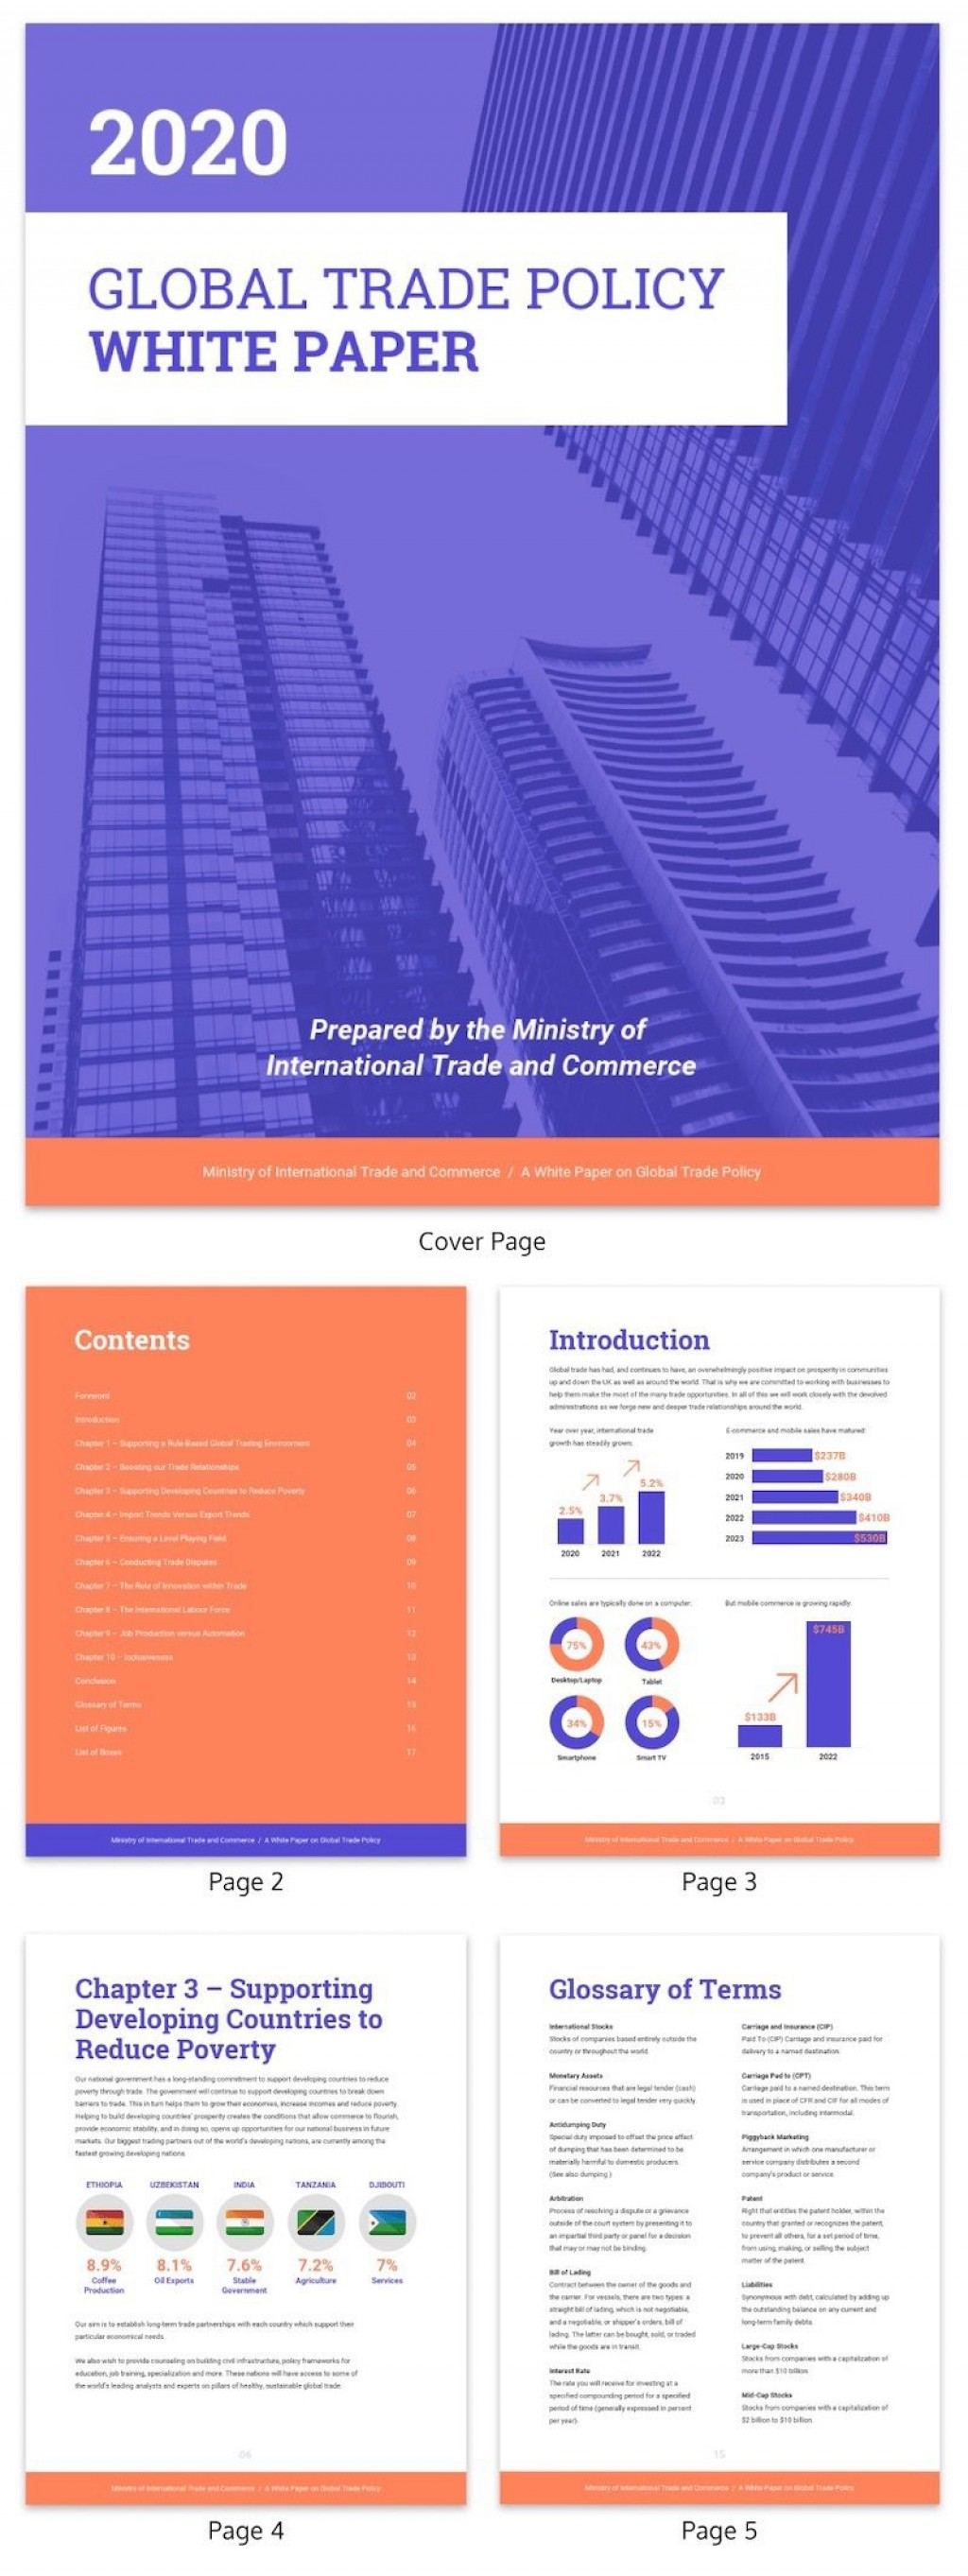 005 Unusual Technical White Paper Template Sample  Example DocLarge